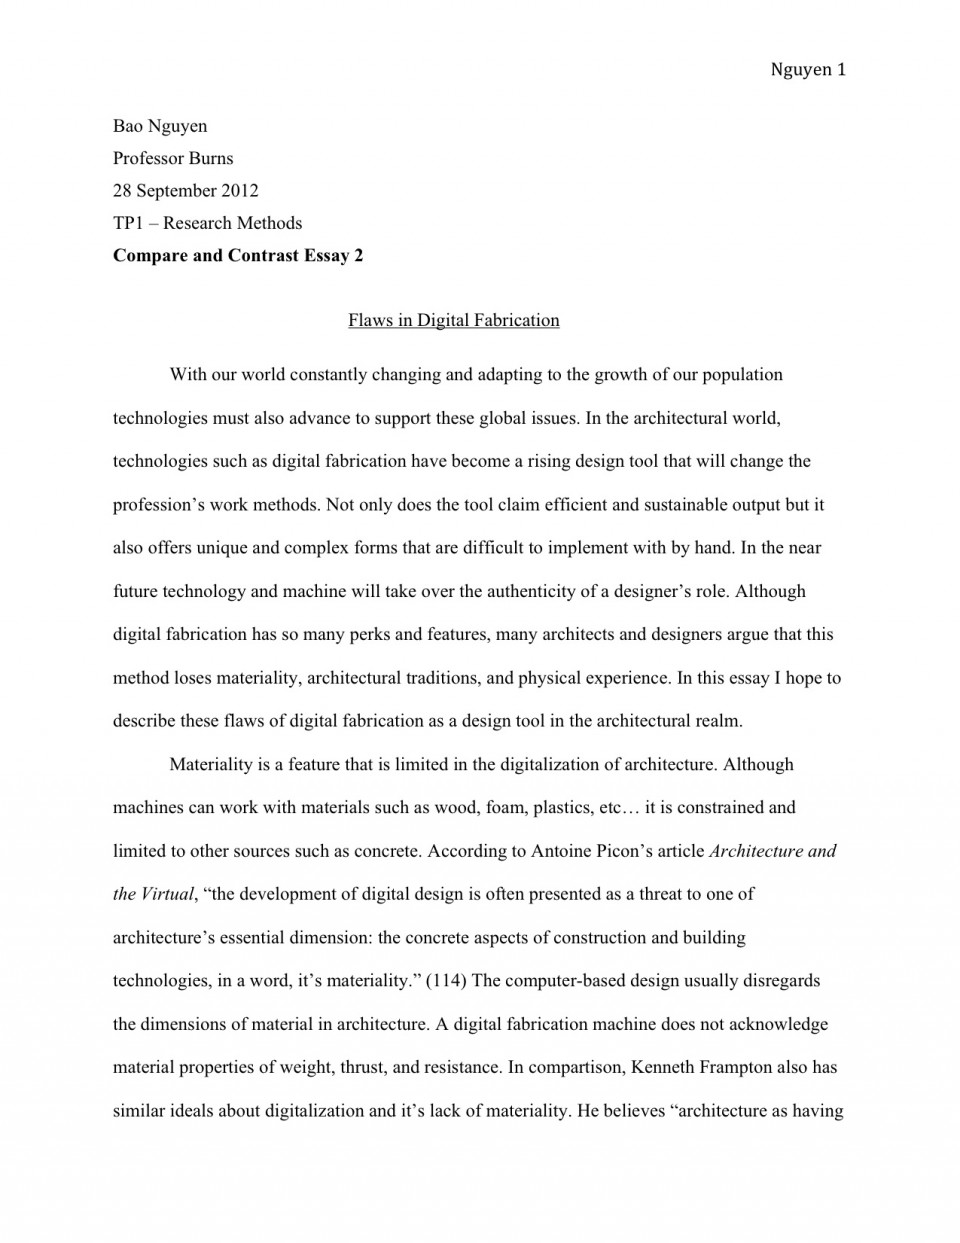 005 How To Write An Essay Example Tp1 3 Shocking About Yourself Without Using I For College English Introduction 960